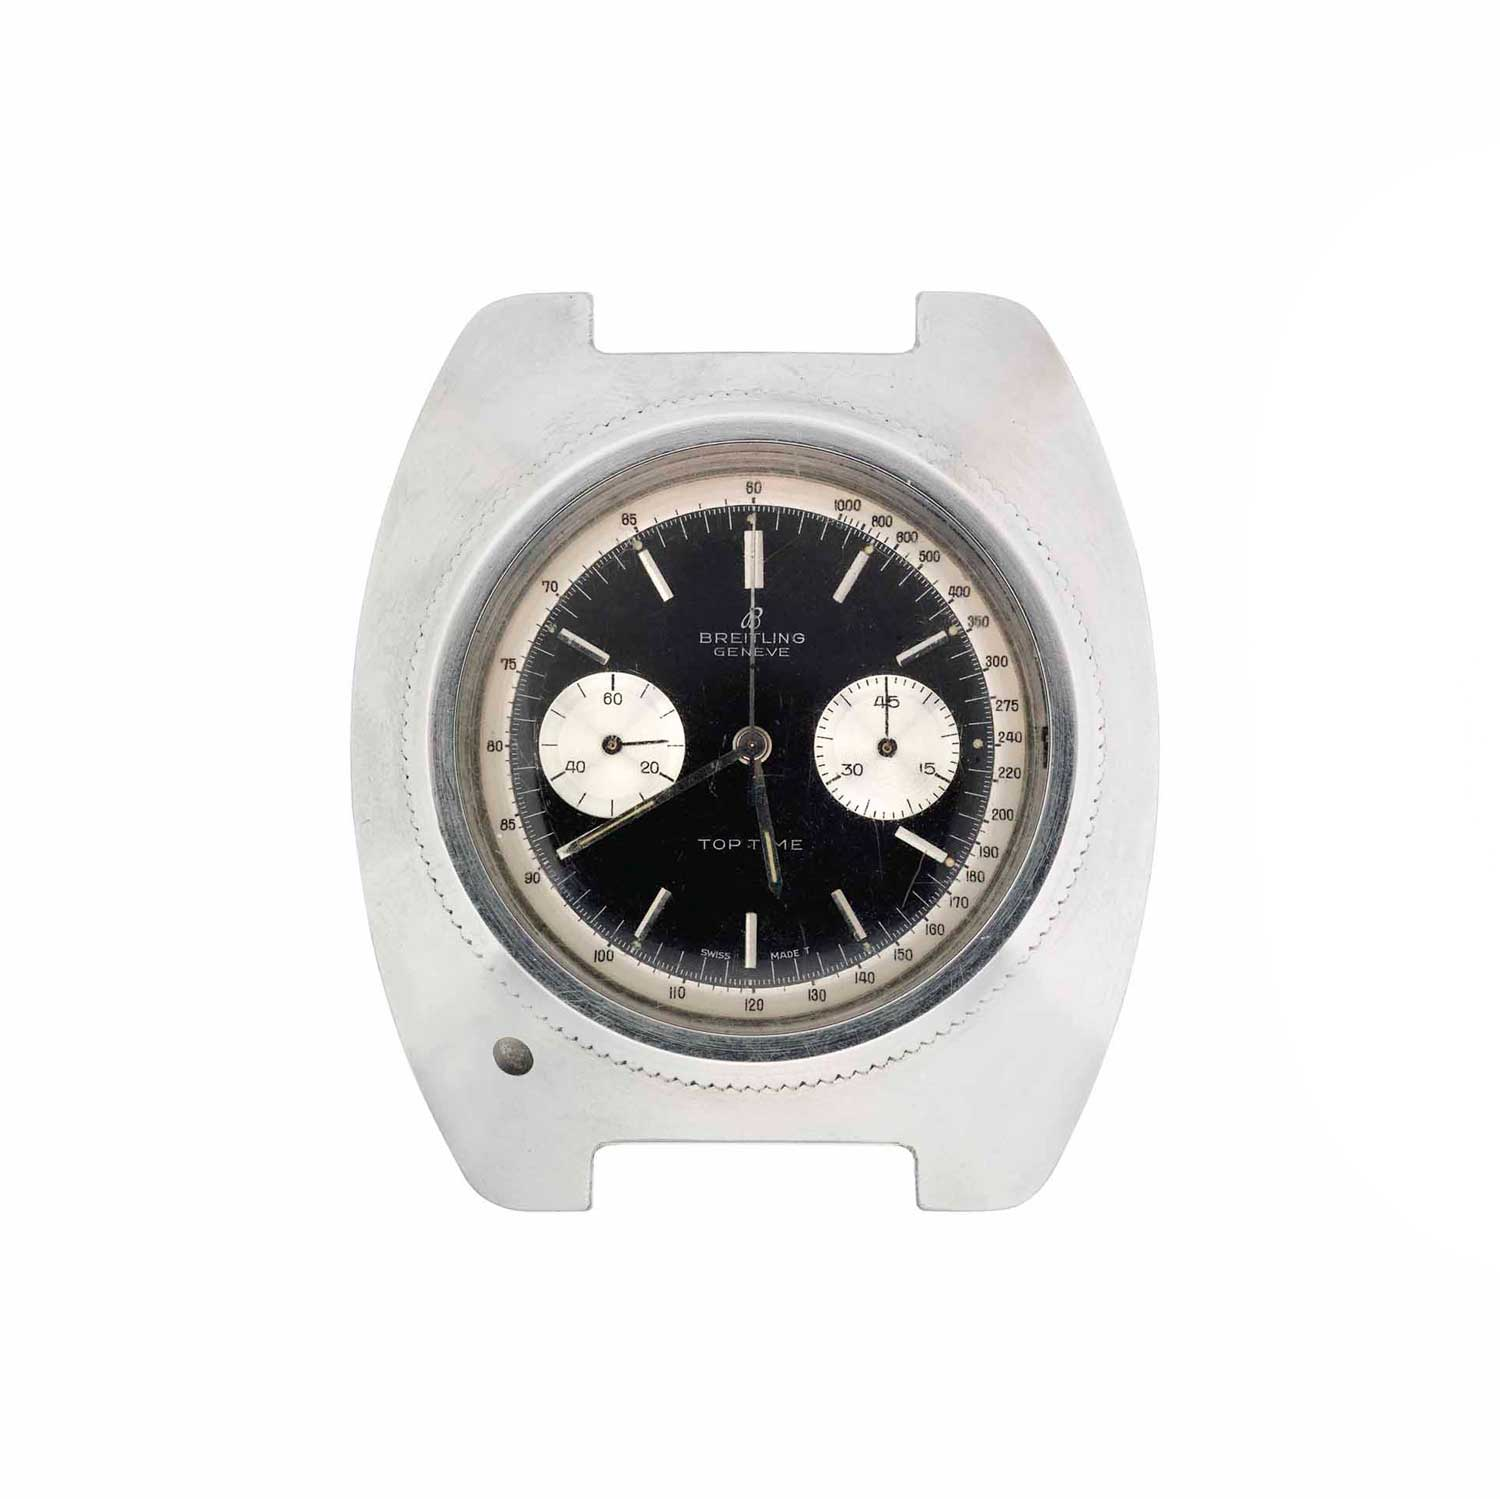 James Bond's specially modified Breitling Top Time wristwatch used in Thunderball, 1965; modified from a ref. 2002; the watch was manufactured in 1962 and then modified for the purpose of the movie